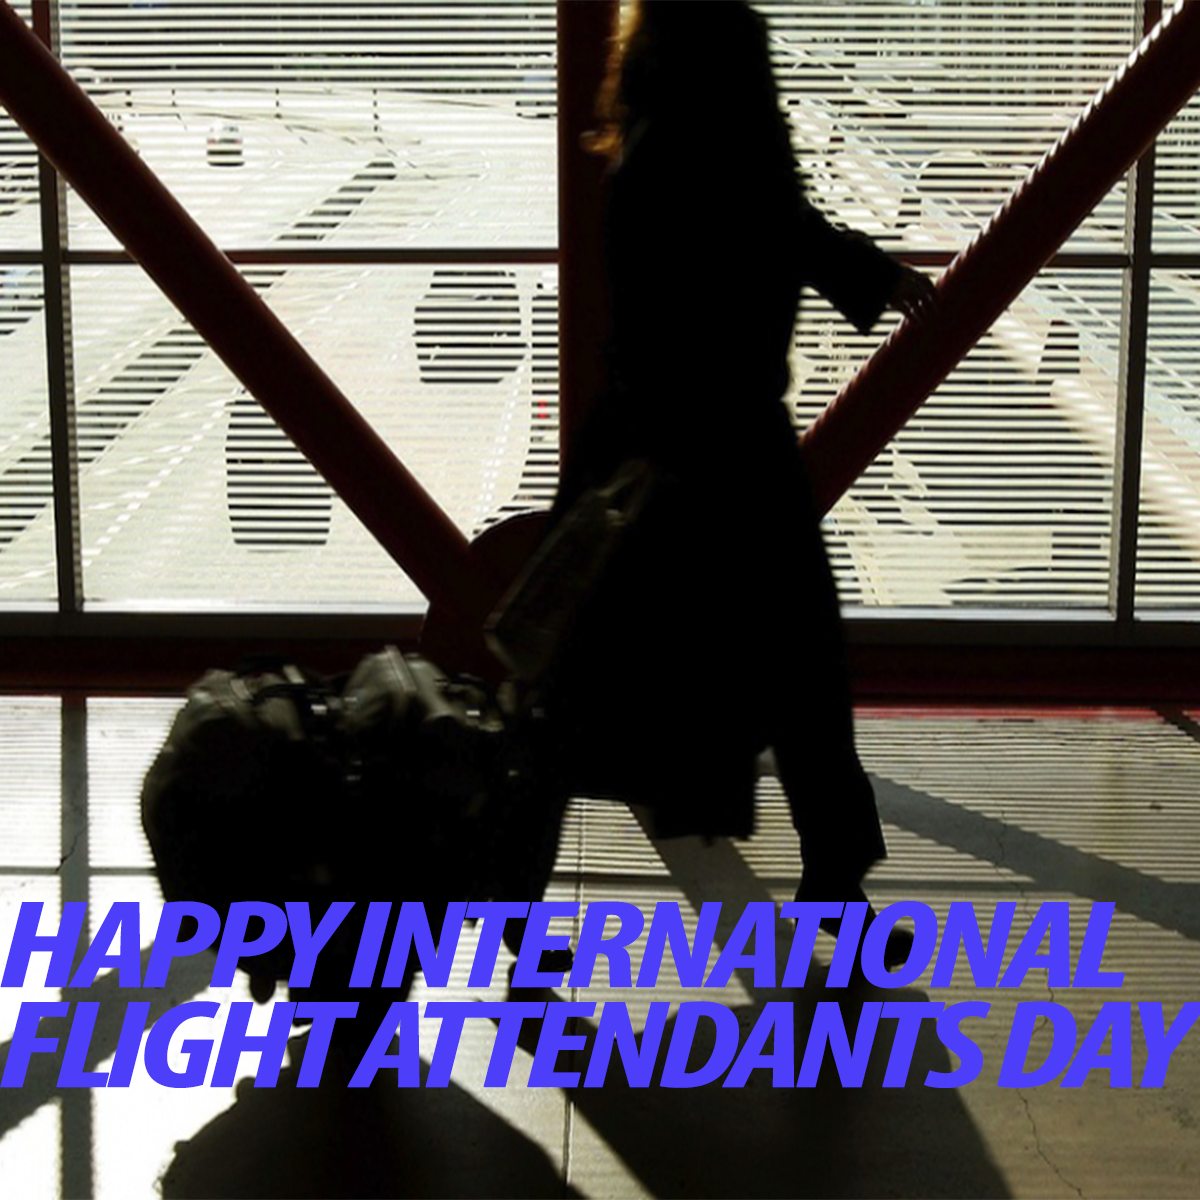 IAM Celebrates International Flight Attendants Day